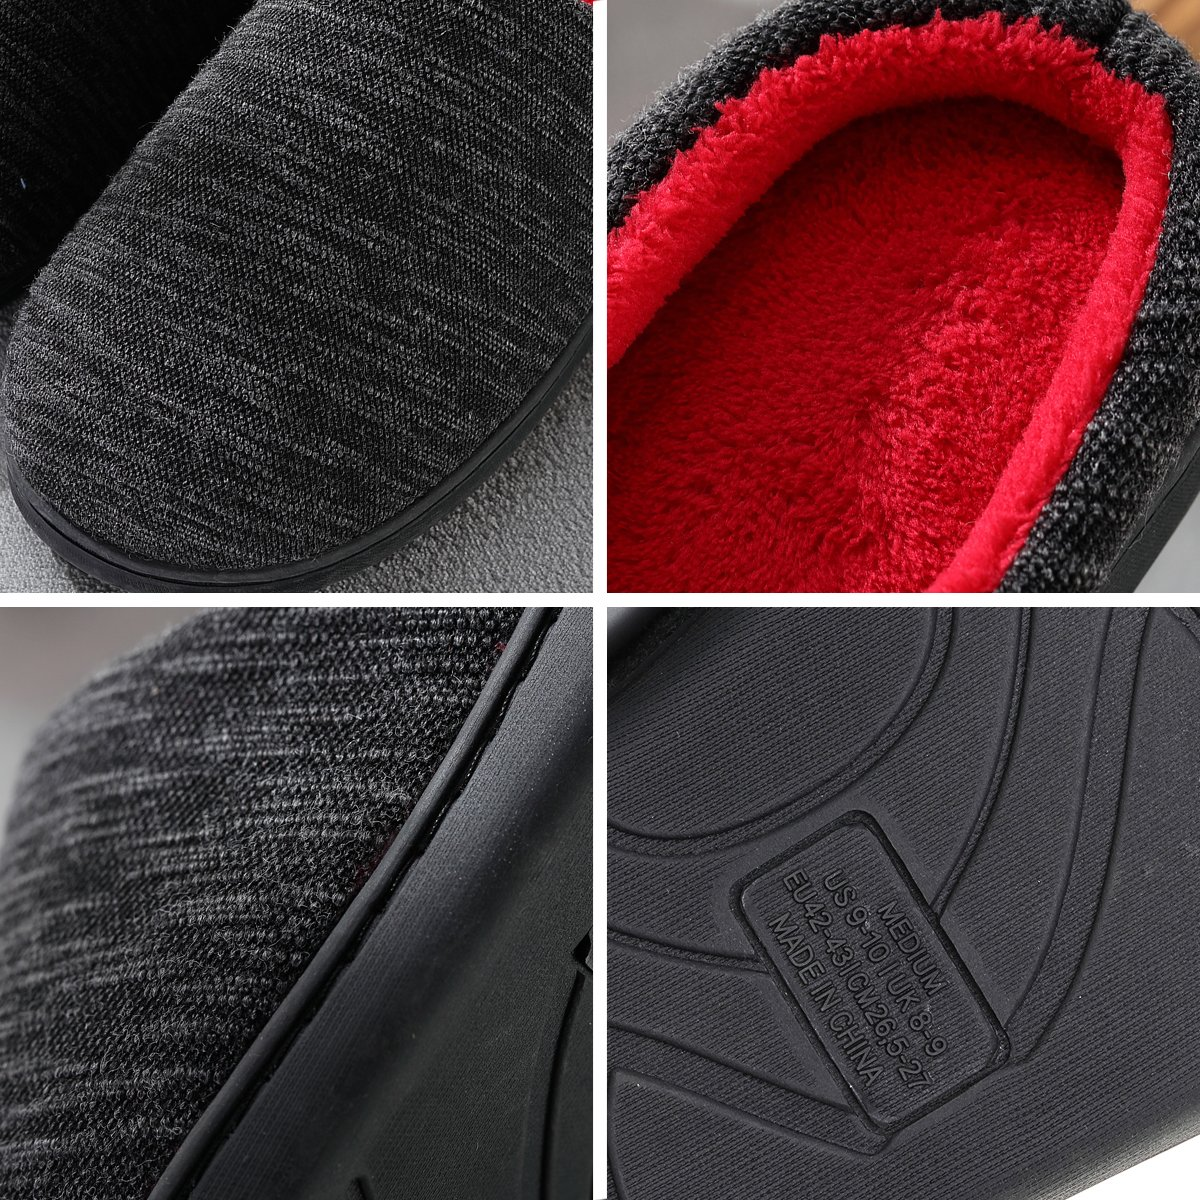 Cozy Spa House Indoor Slippers for Men Warm Lining Clog Furry Slippers by Harrms (Image #7)